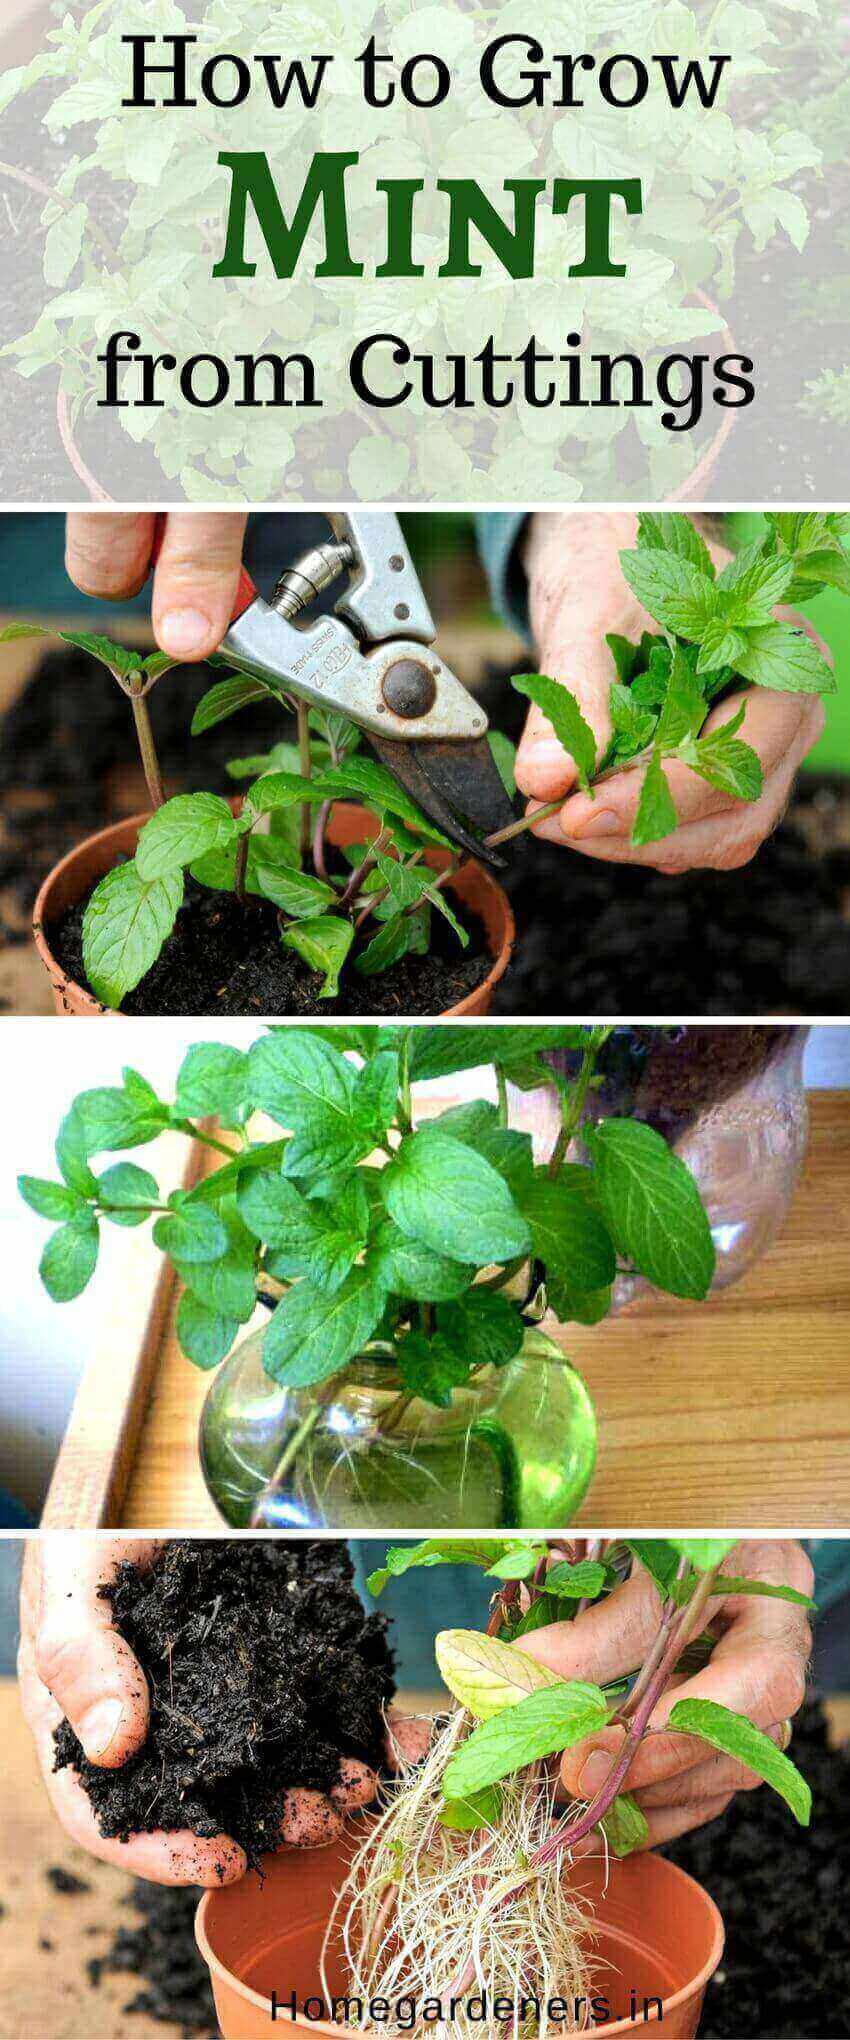 Mentha - How to Plant, Grow and Care for Mint Easily